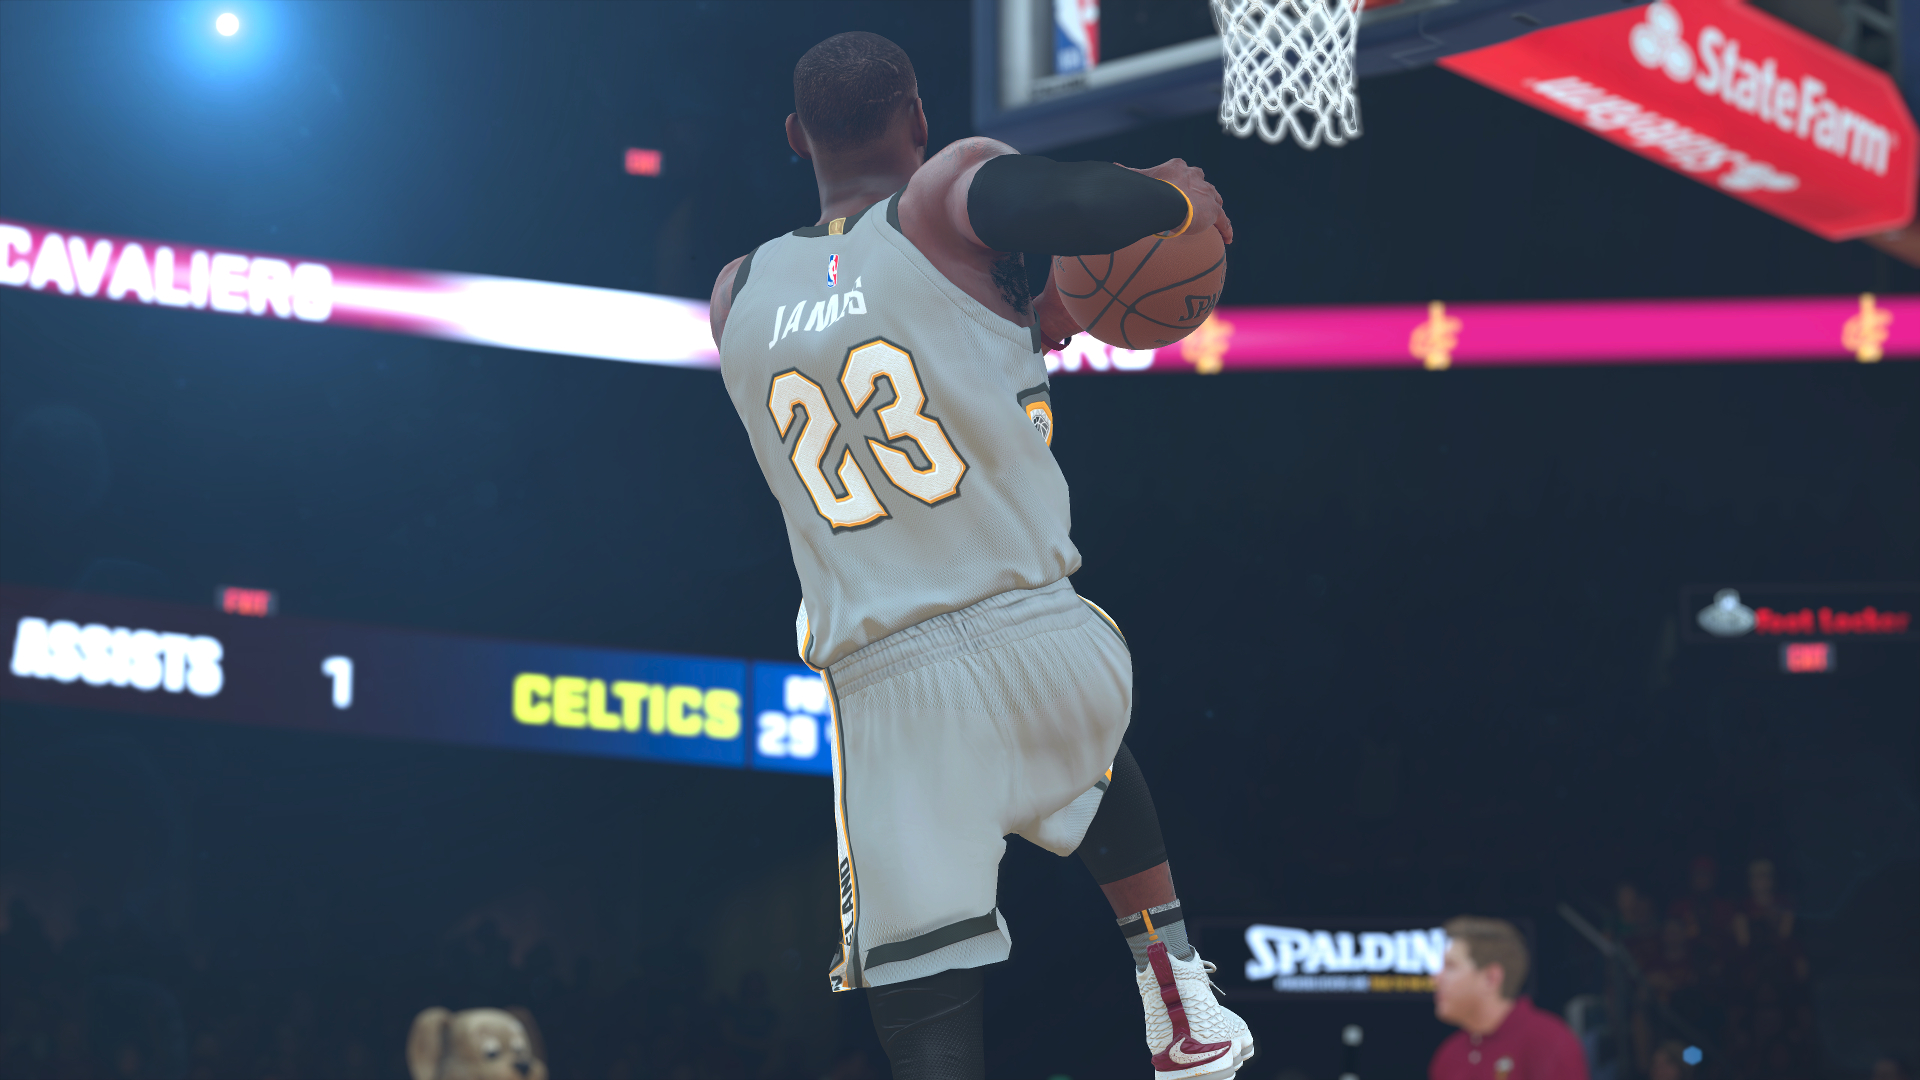 NBA 2K18 LeBron James Eastern Conference Finals